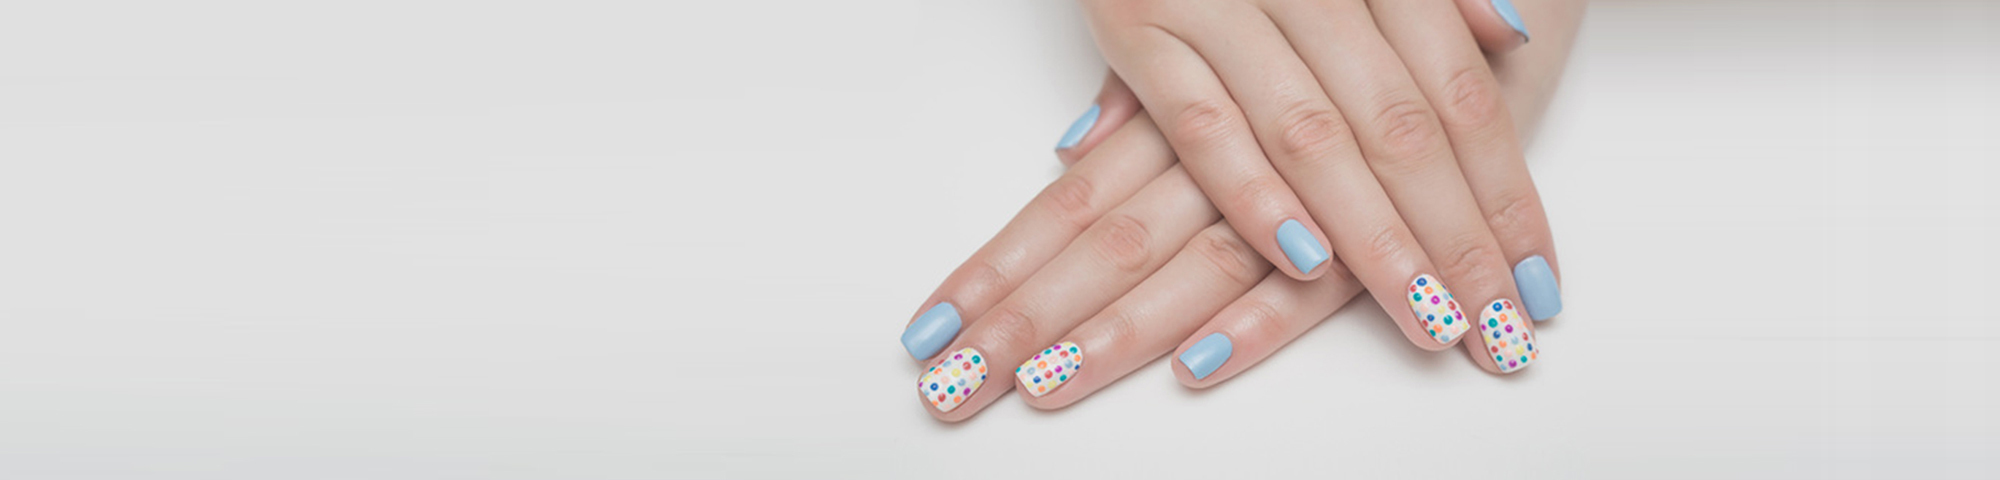 Appointment To See One Of Our Nail Technicians Simply Visit Us At Four Salons Located In Porirua Kapiti Johnsonville Kilbirnie